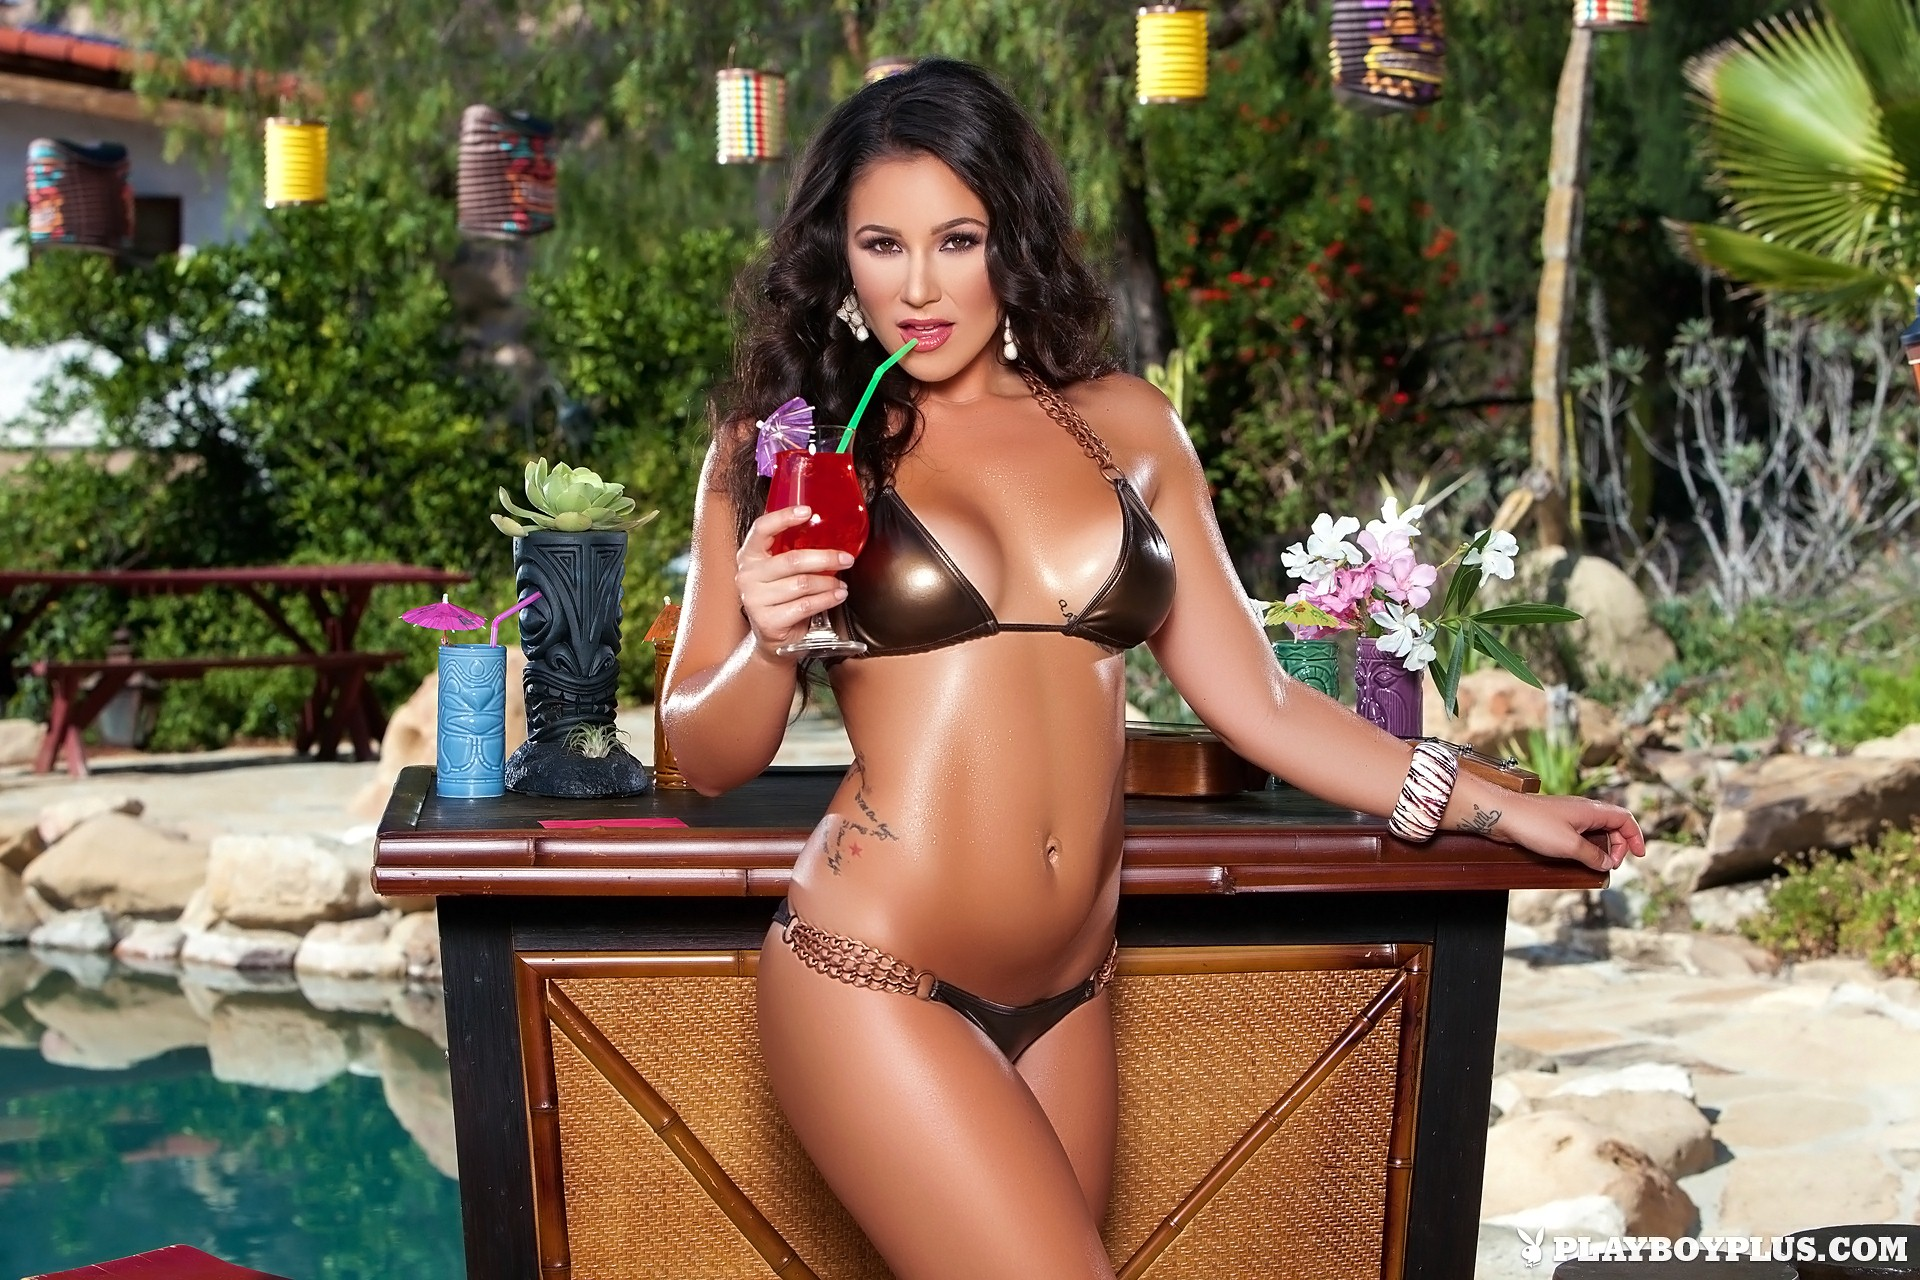 Candace Leilani nude at the Tiki Bar for Playboy | Daily Girls @ Female Update